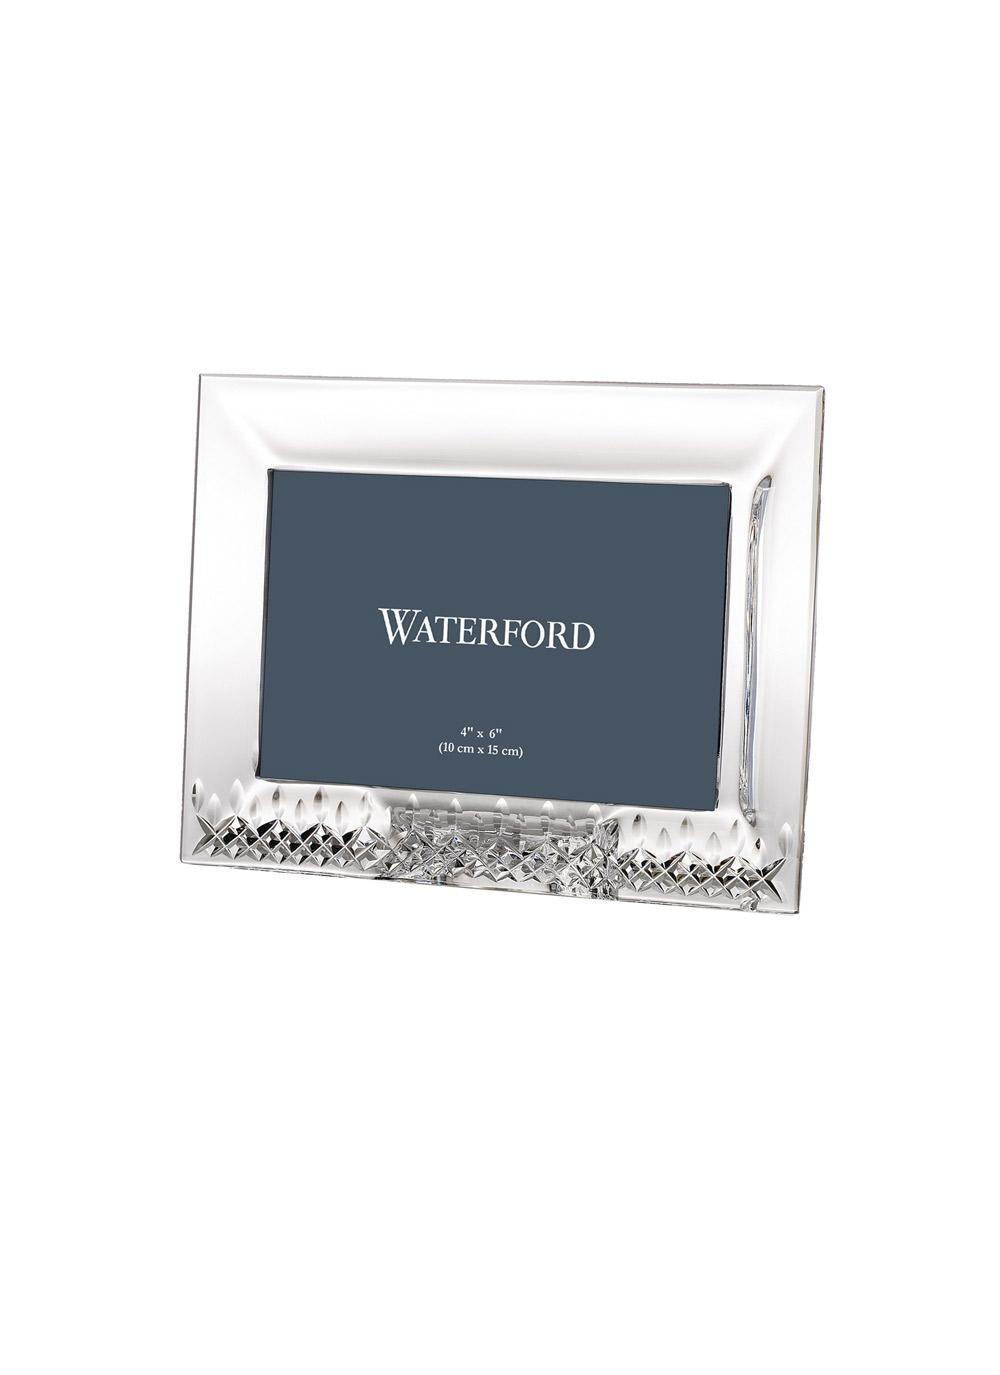 Waterford Crystal Lismore Essence Picture Frame 4\'\' x 6\'\'   Blarney